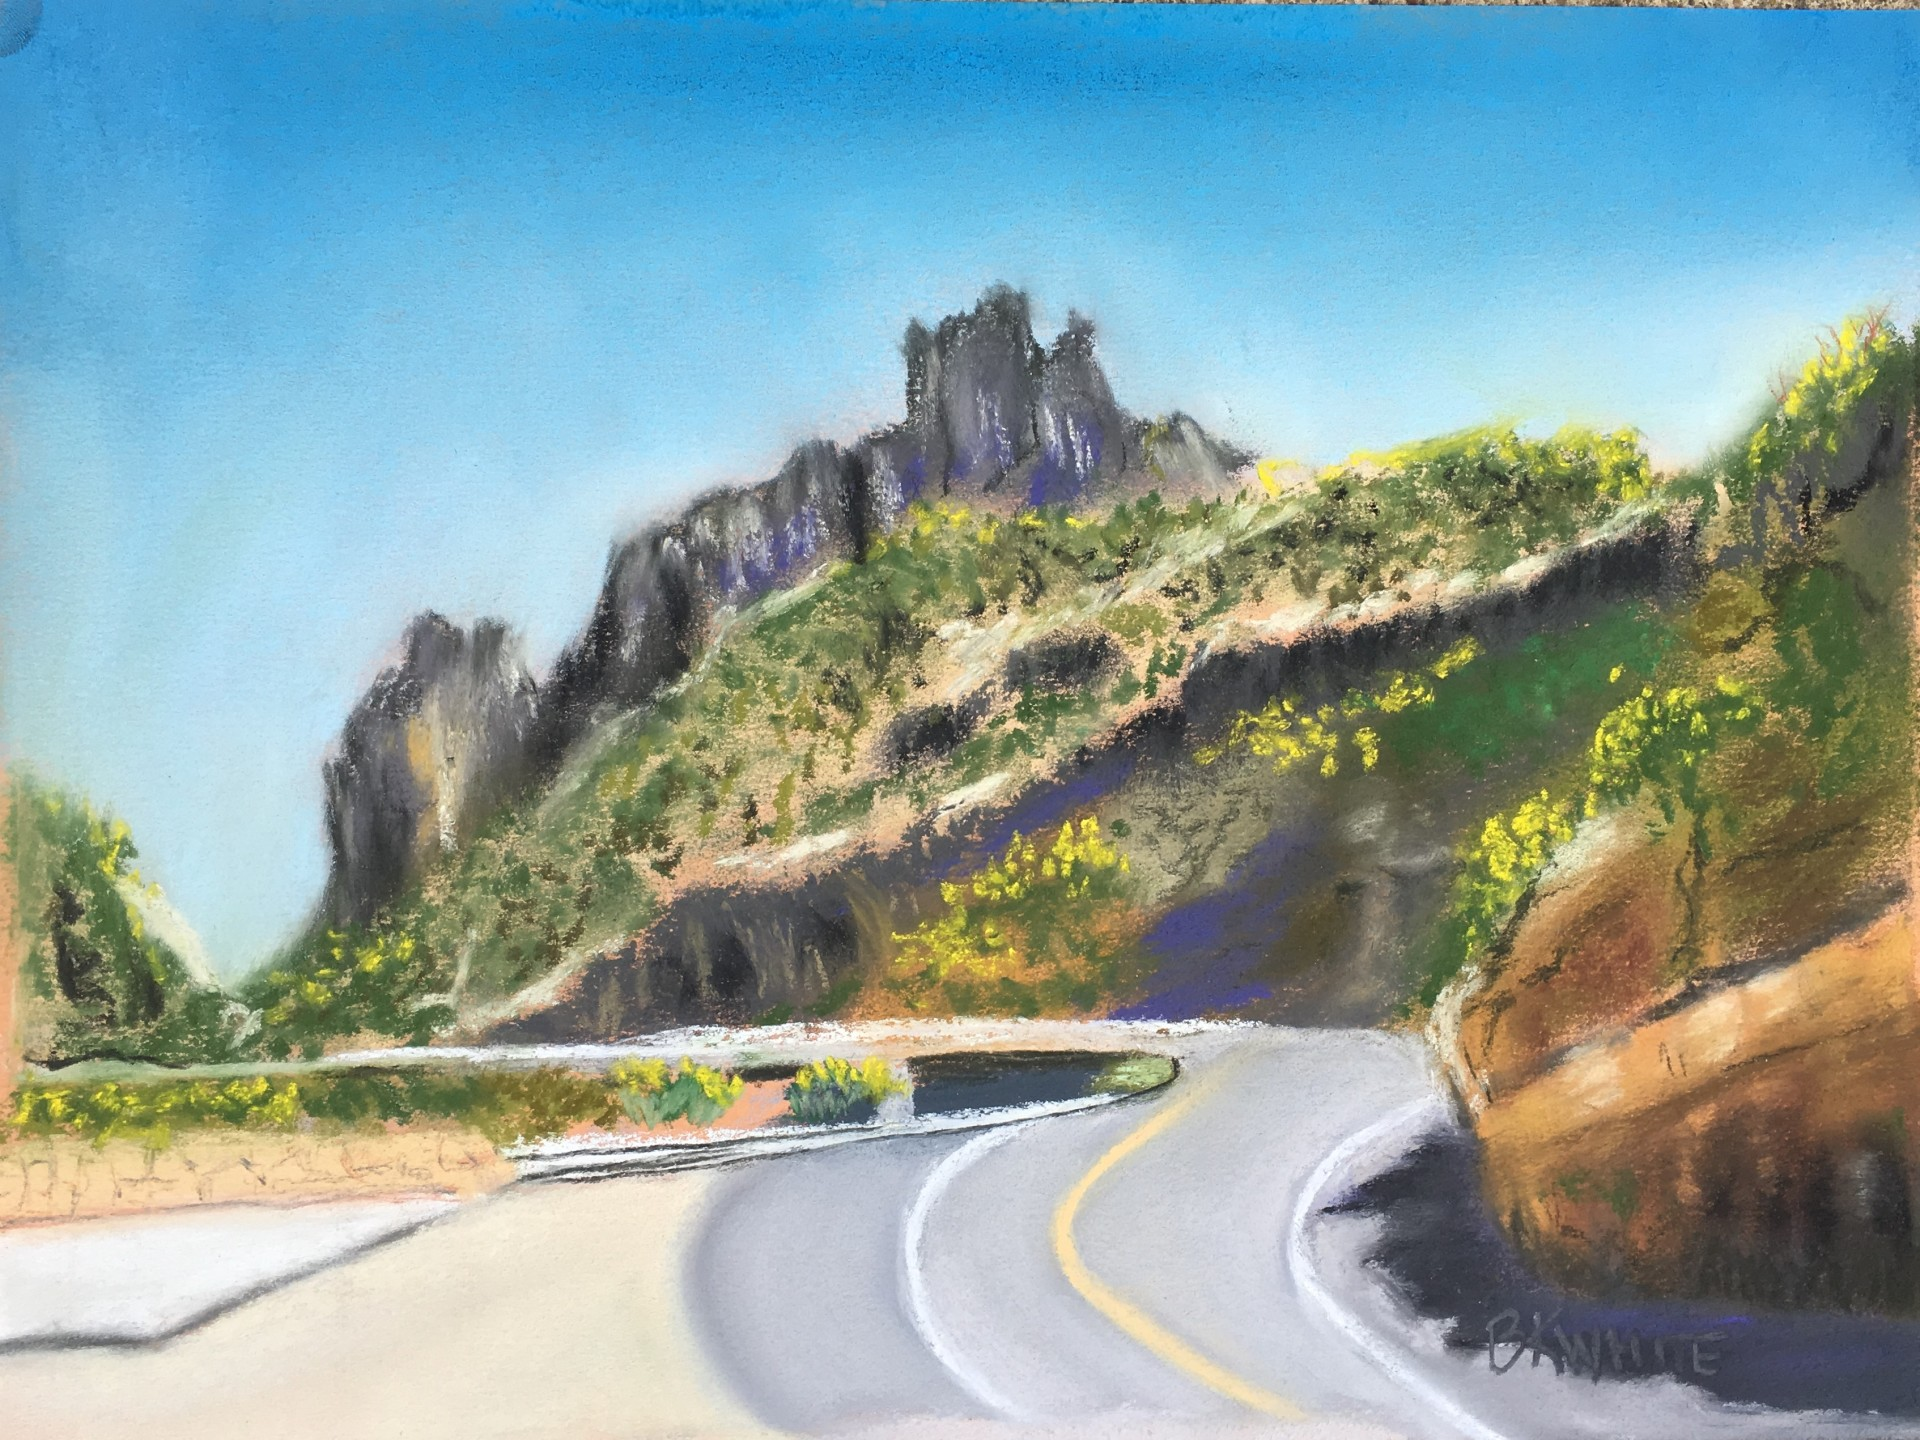 Mt_lemon, travel, gift, painting, nature, mountains, vacation, tucson, beauitful